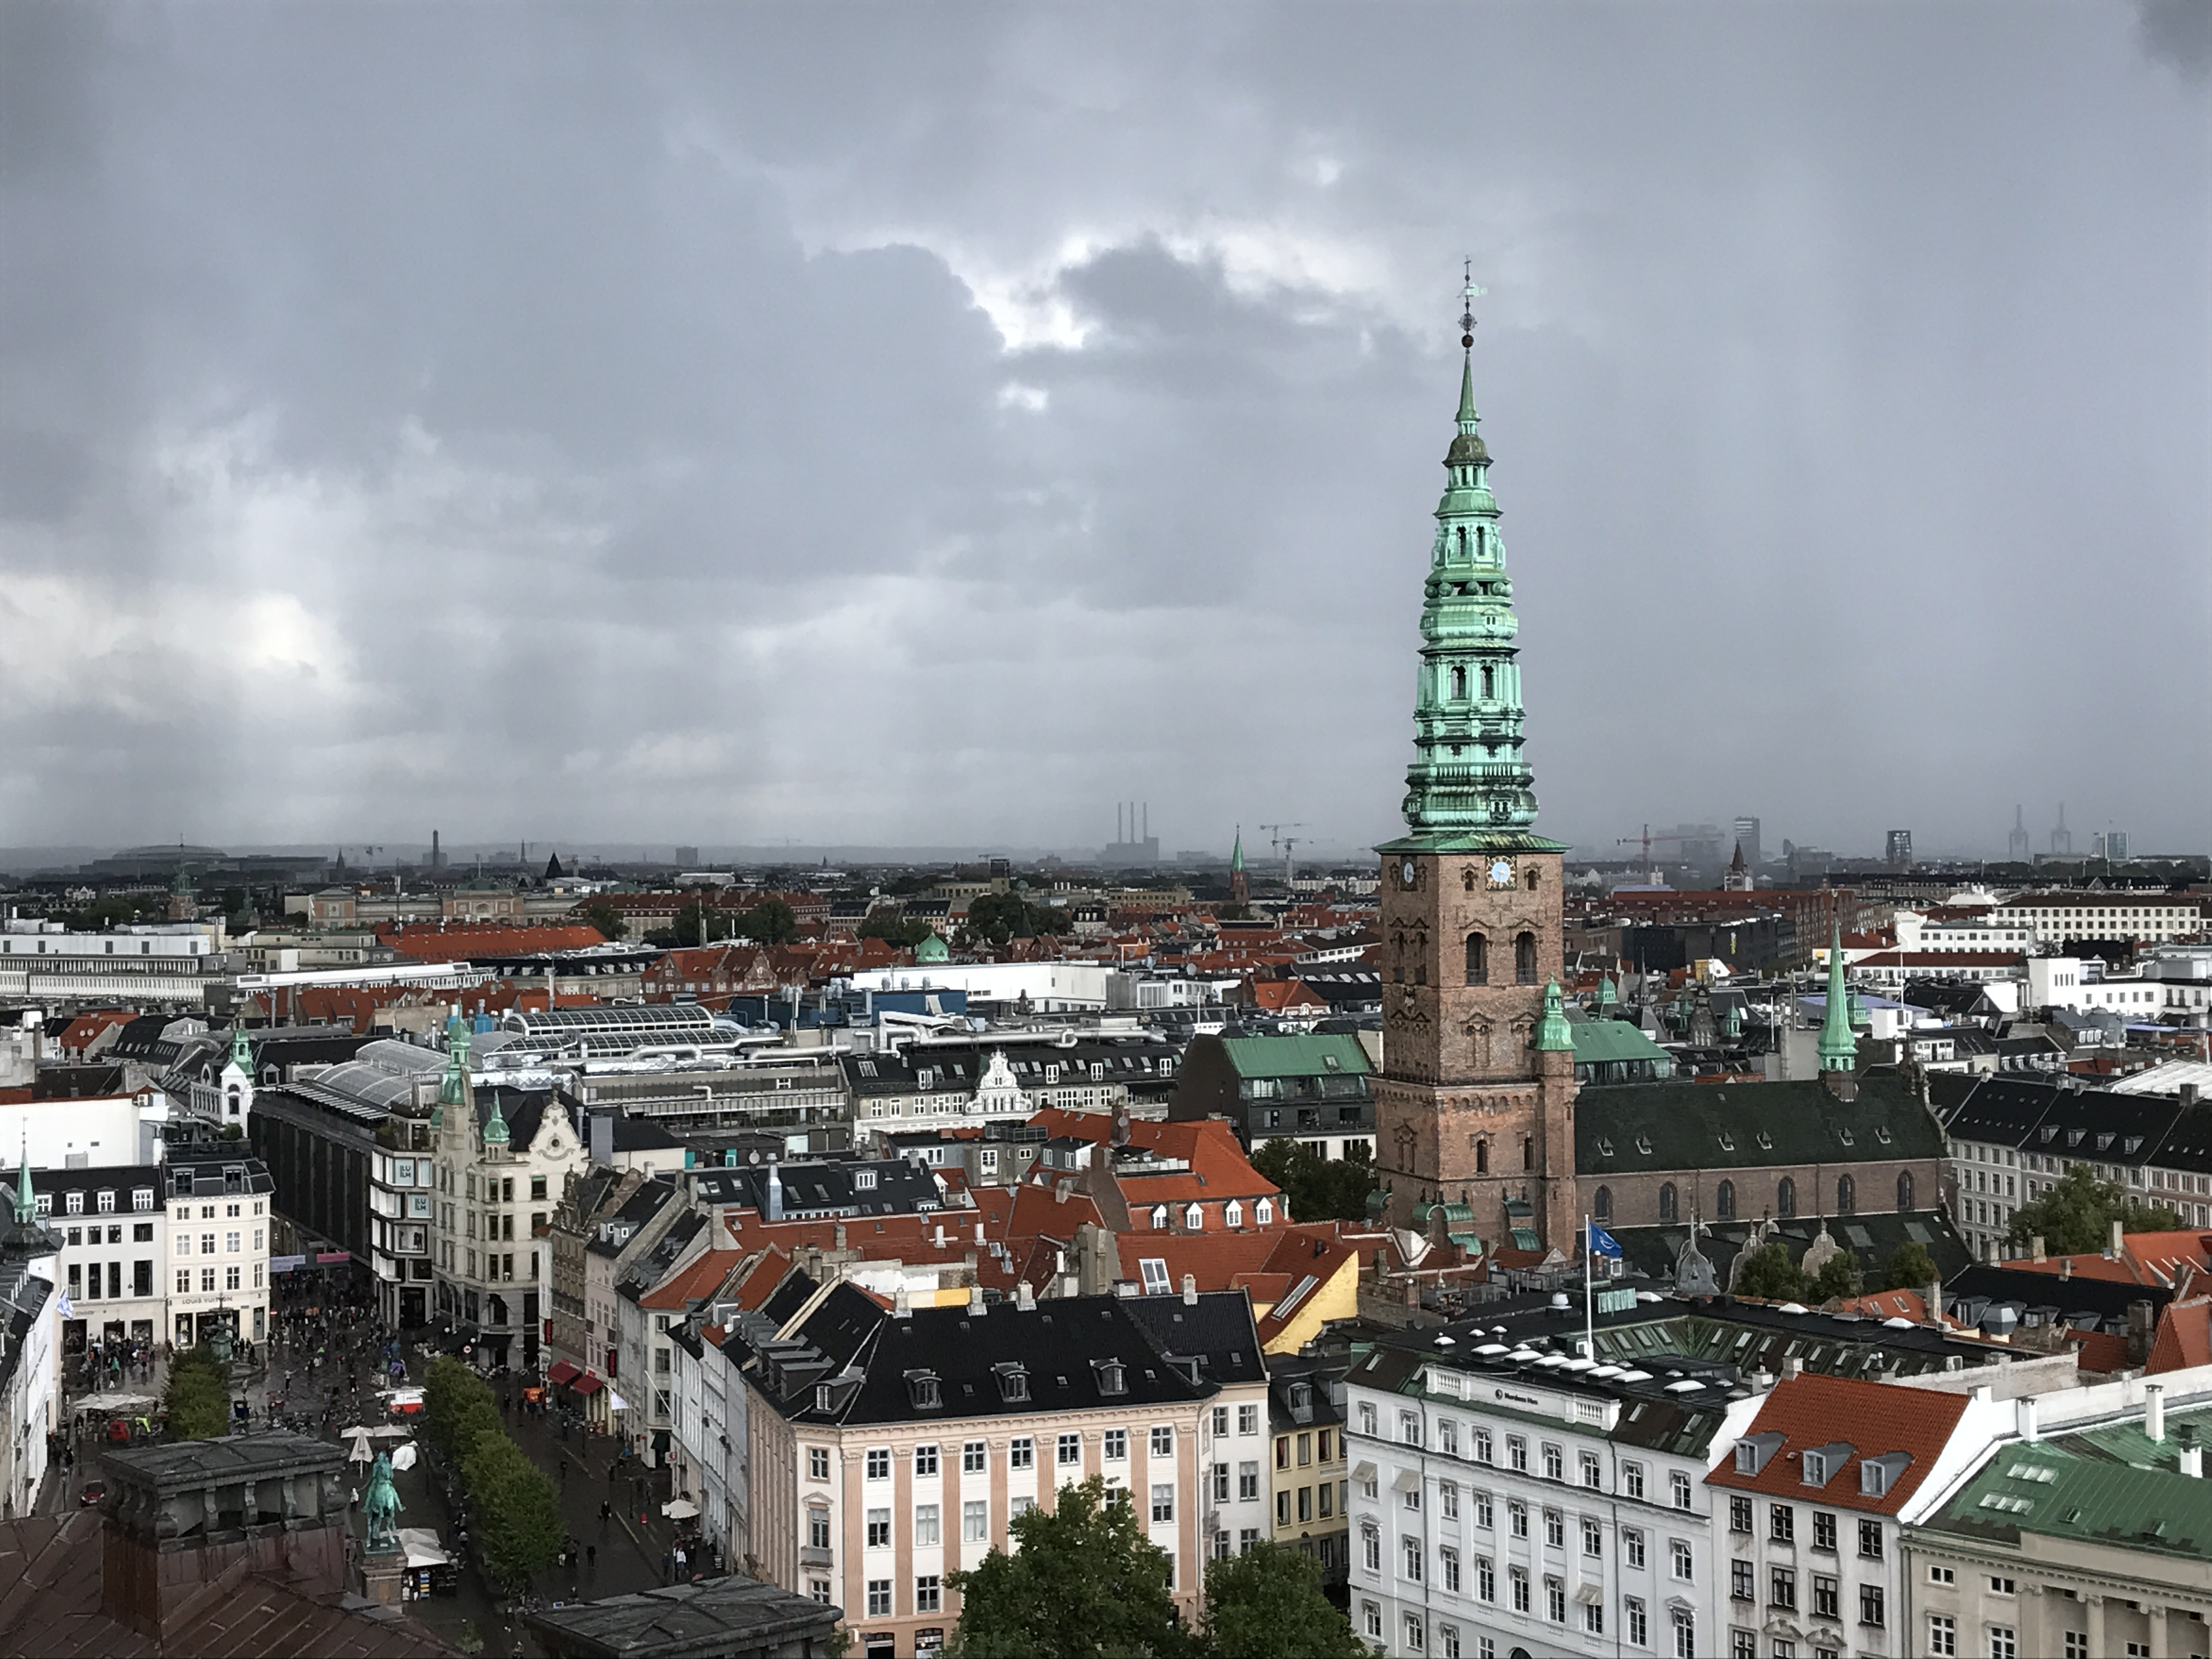 The view from Christiansborg Palace tower (Lauren Taylor/PA)